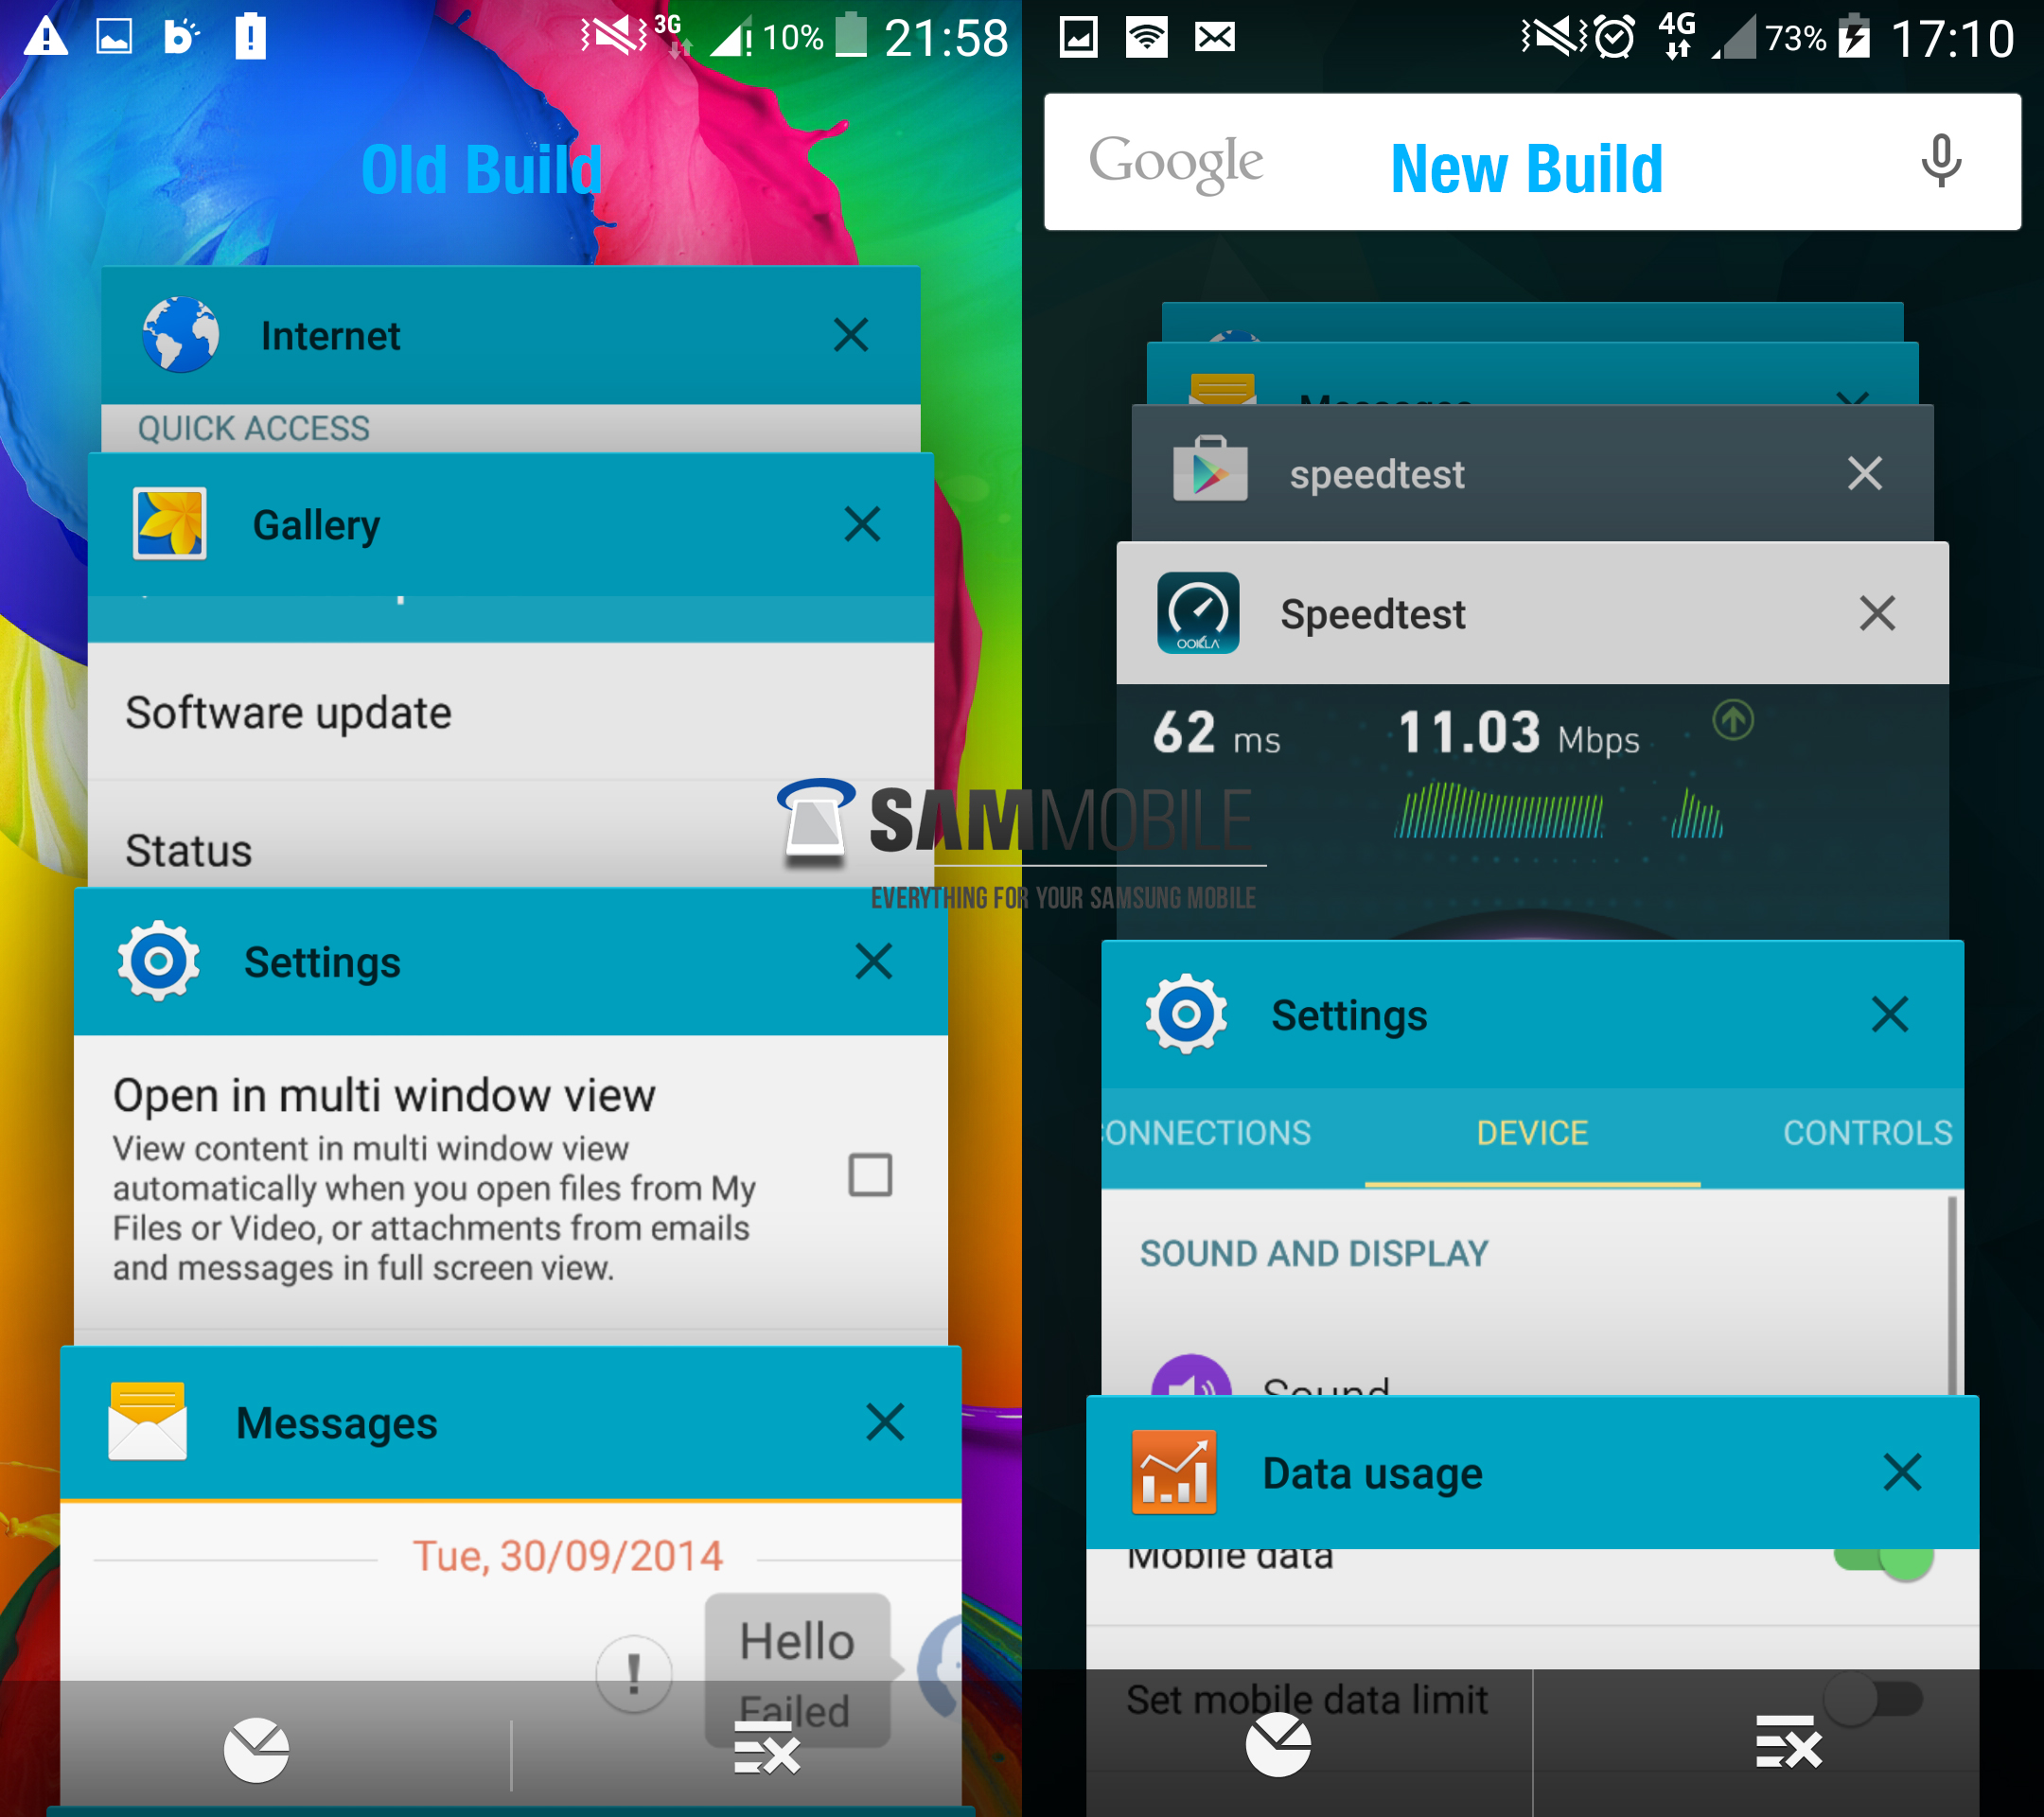 Watch this samsung galaxy s5 running leaked android 50 lollipop the newly leaked version of lollipopped touchwiz shows a similar touchwiz interface only with small design tweaks to the settings calculator biocorpaavc